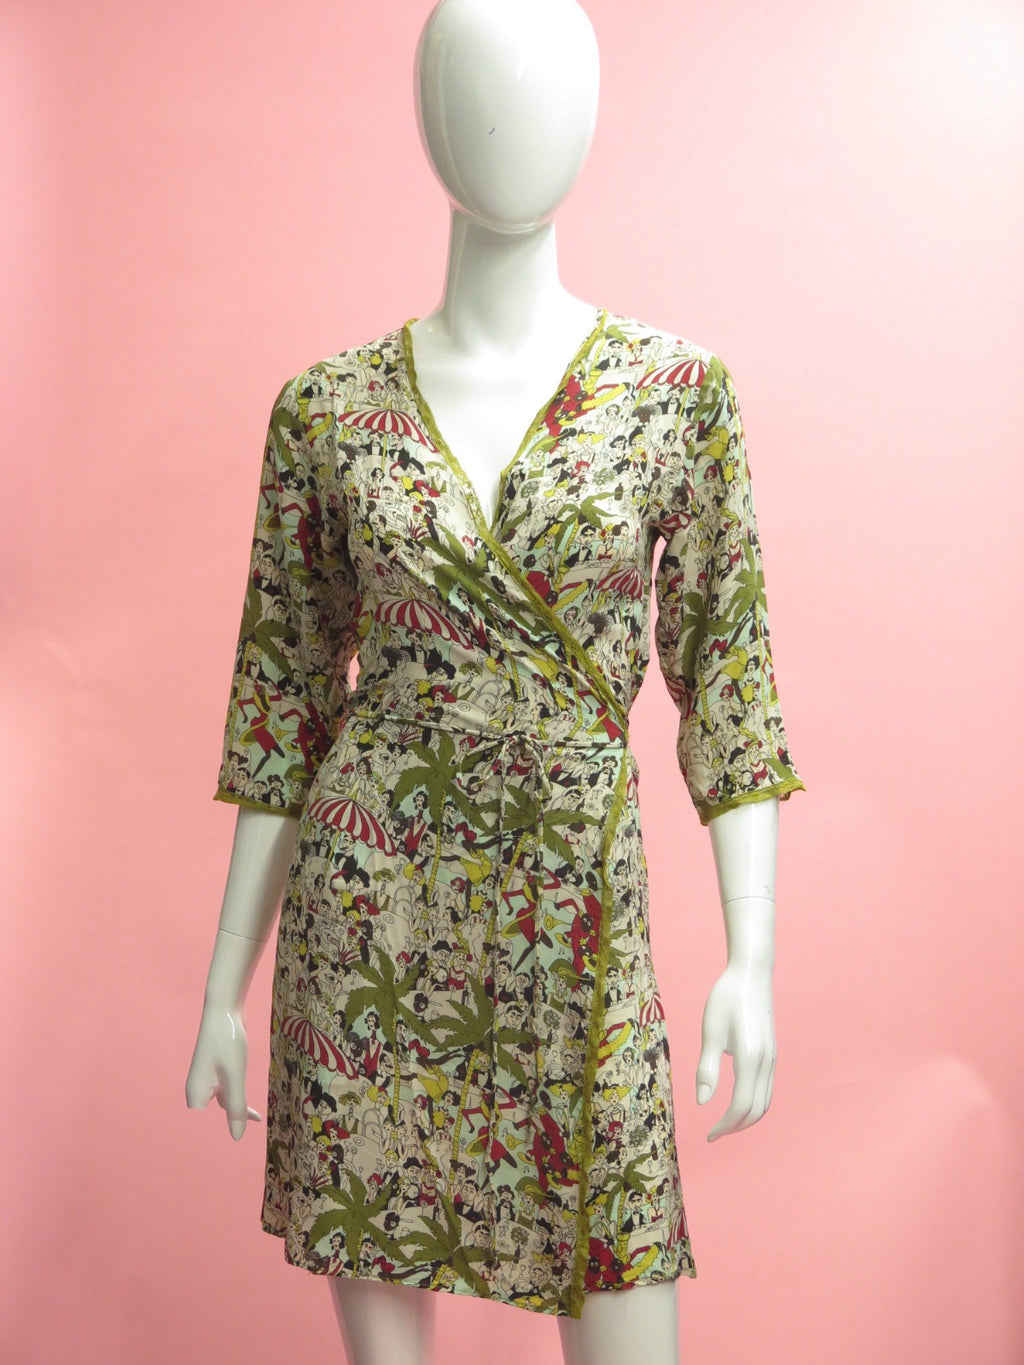 1990's John Galliano Festive Print Wrap Dress